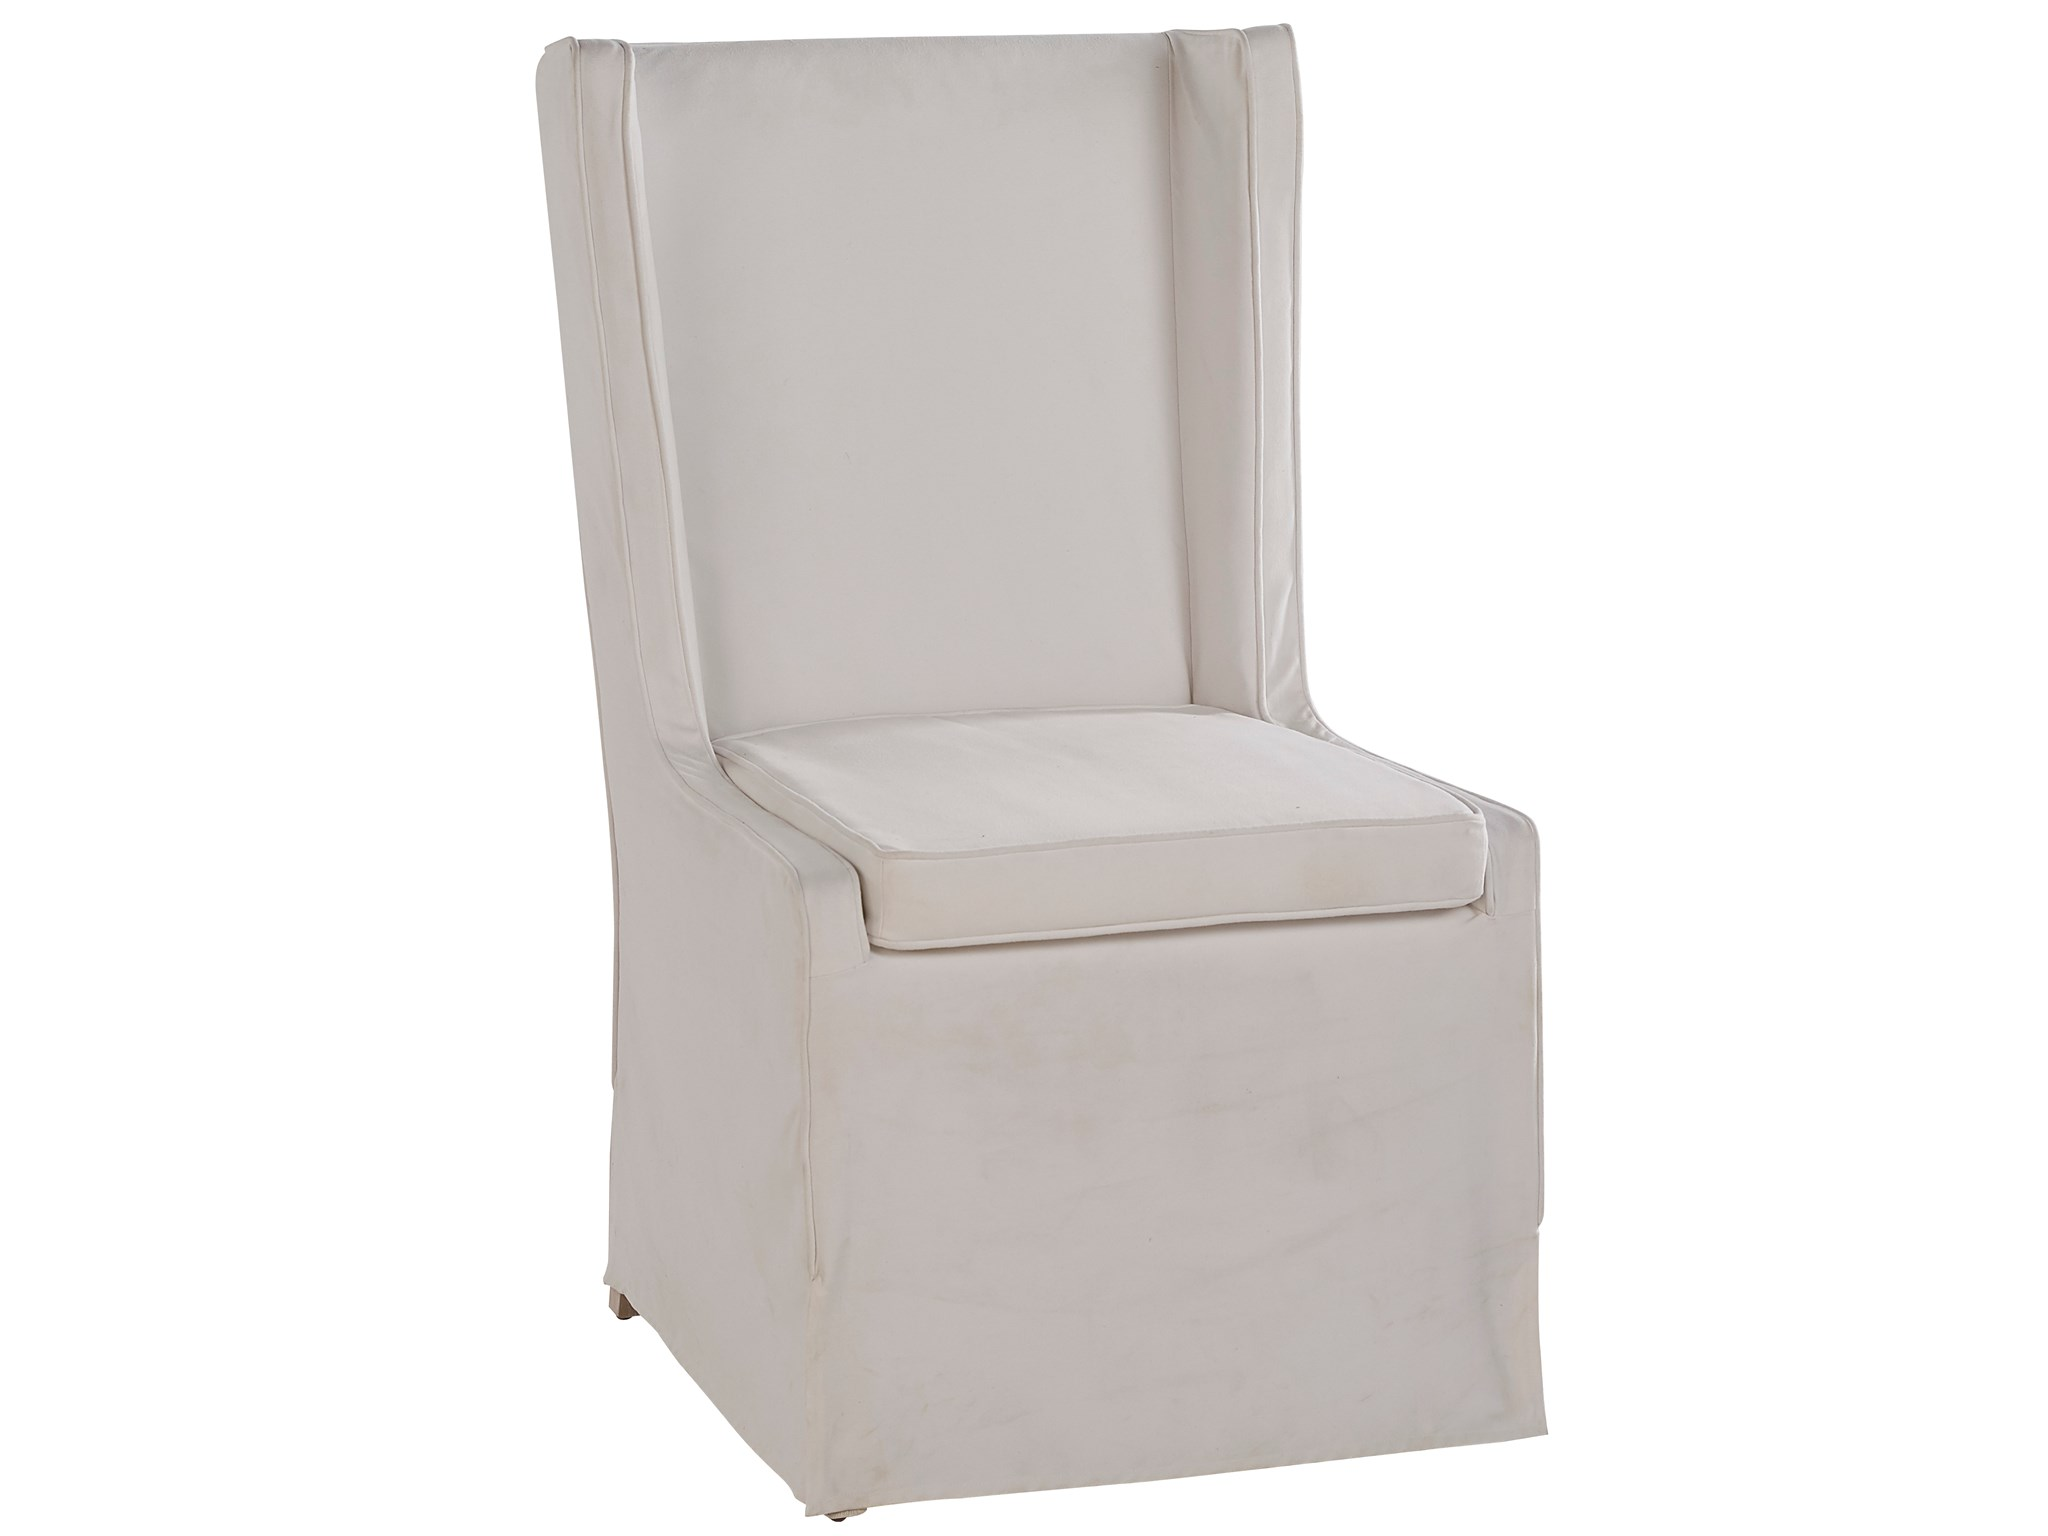 Getaway Slip Cover Chair